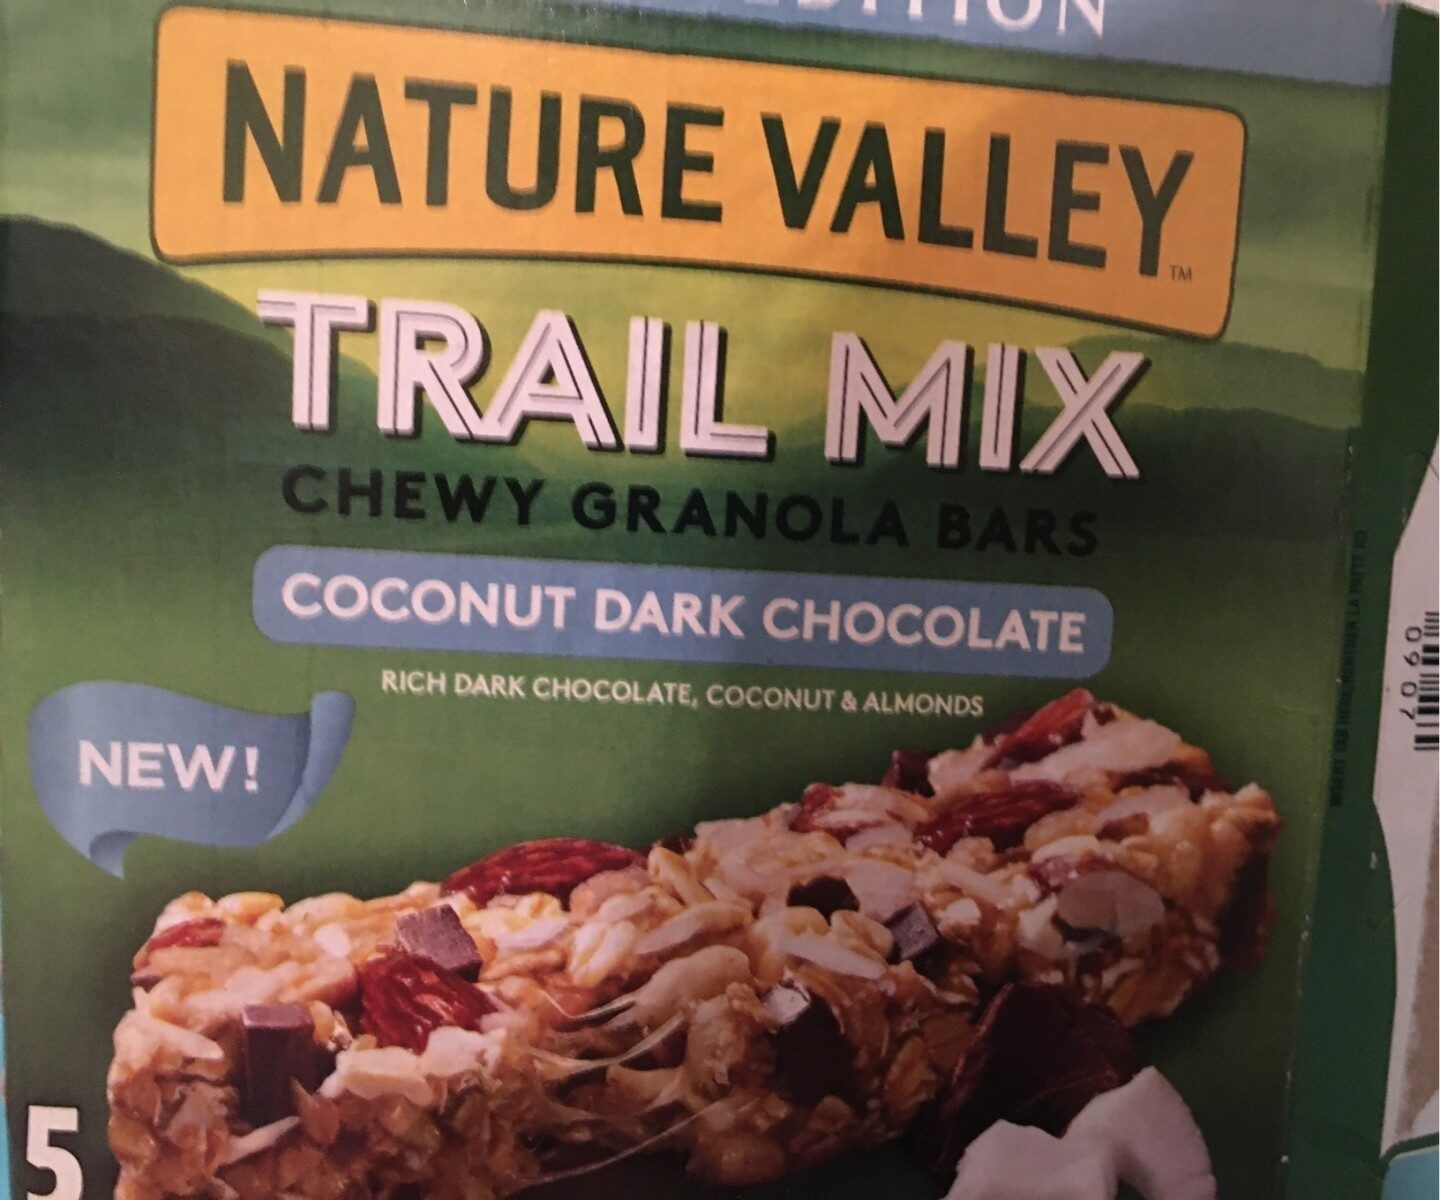 Trail Mix Chewy Granola Bars Coccanut Dark Chocolate - Produit - fr